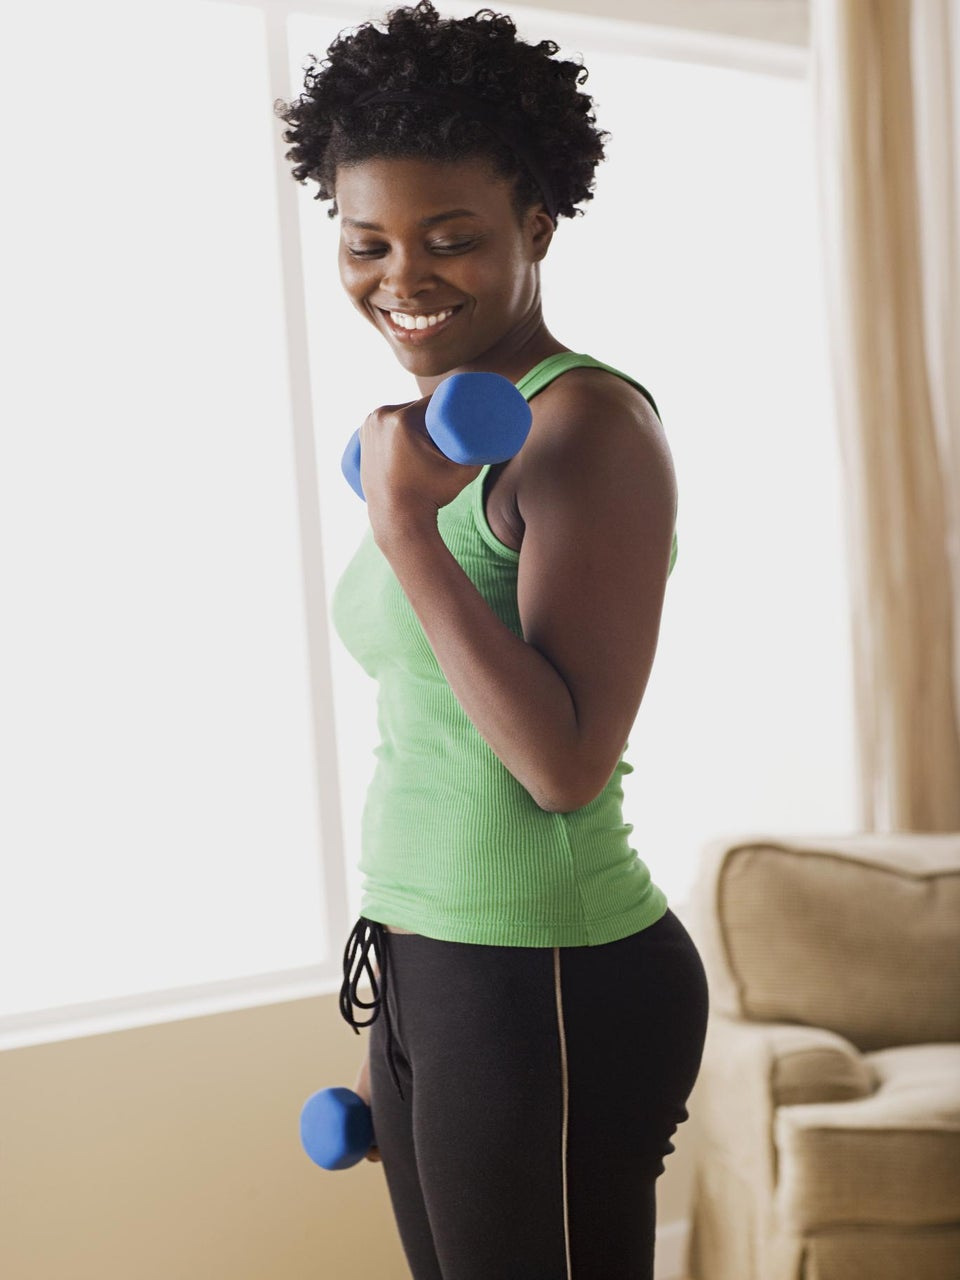 Use These Hair Tips Before Working off Those Holiday Calories